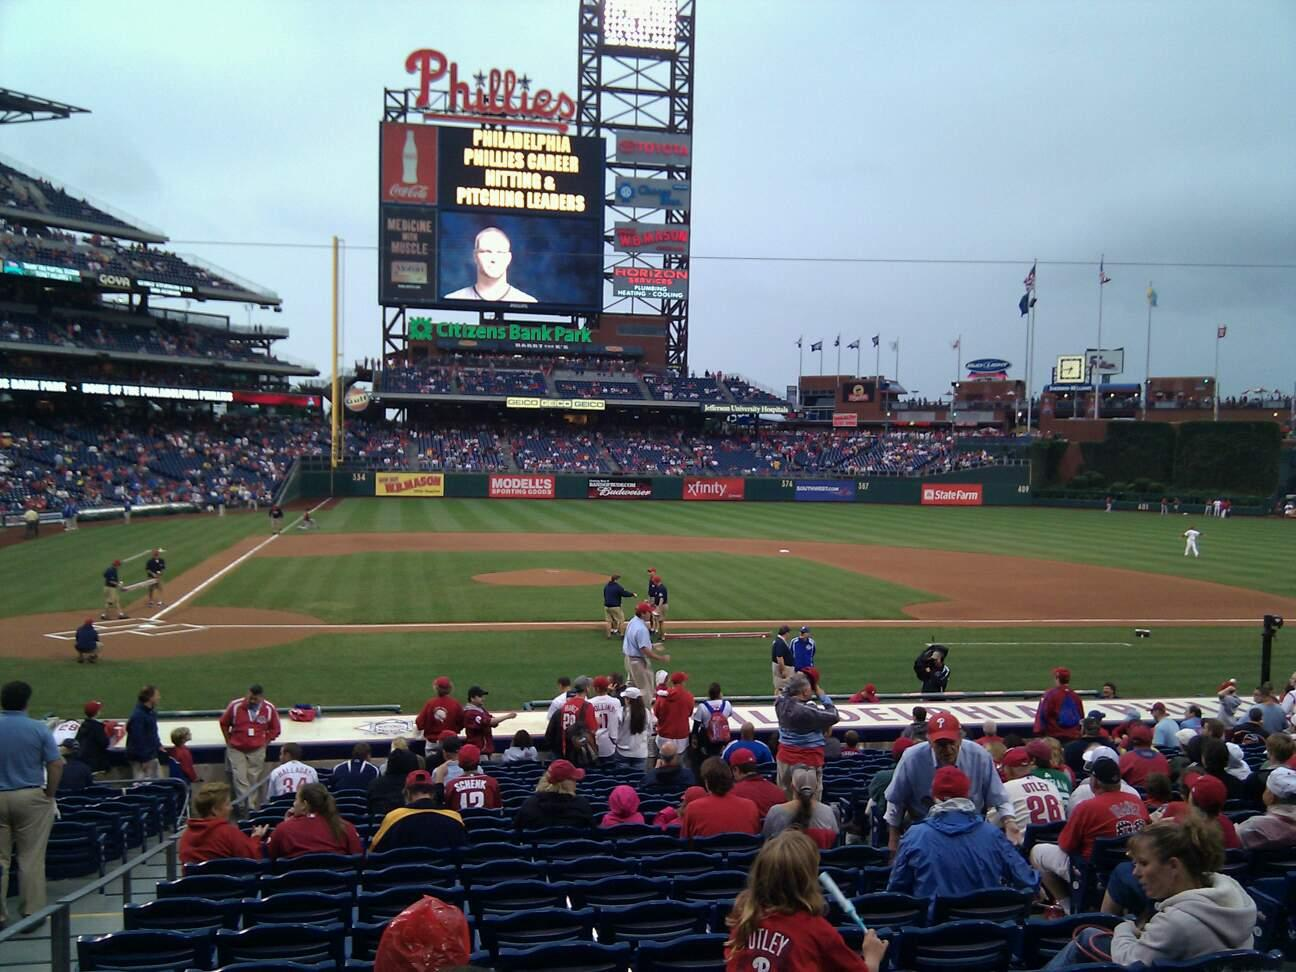 Citizens Bank Park Section 118 Row 21 Seat 6